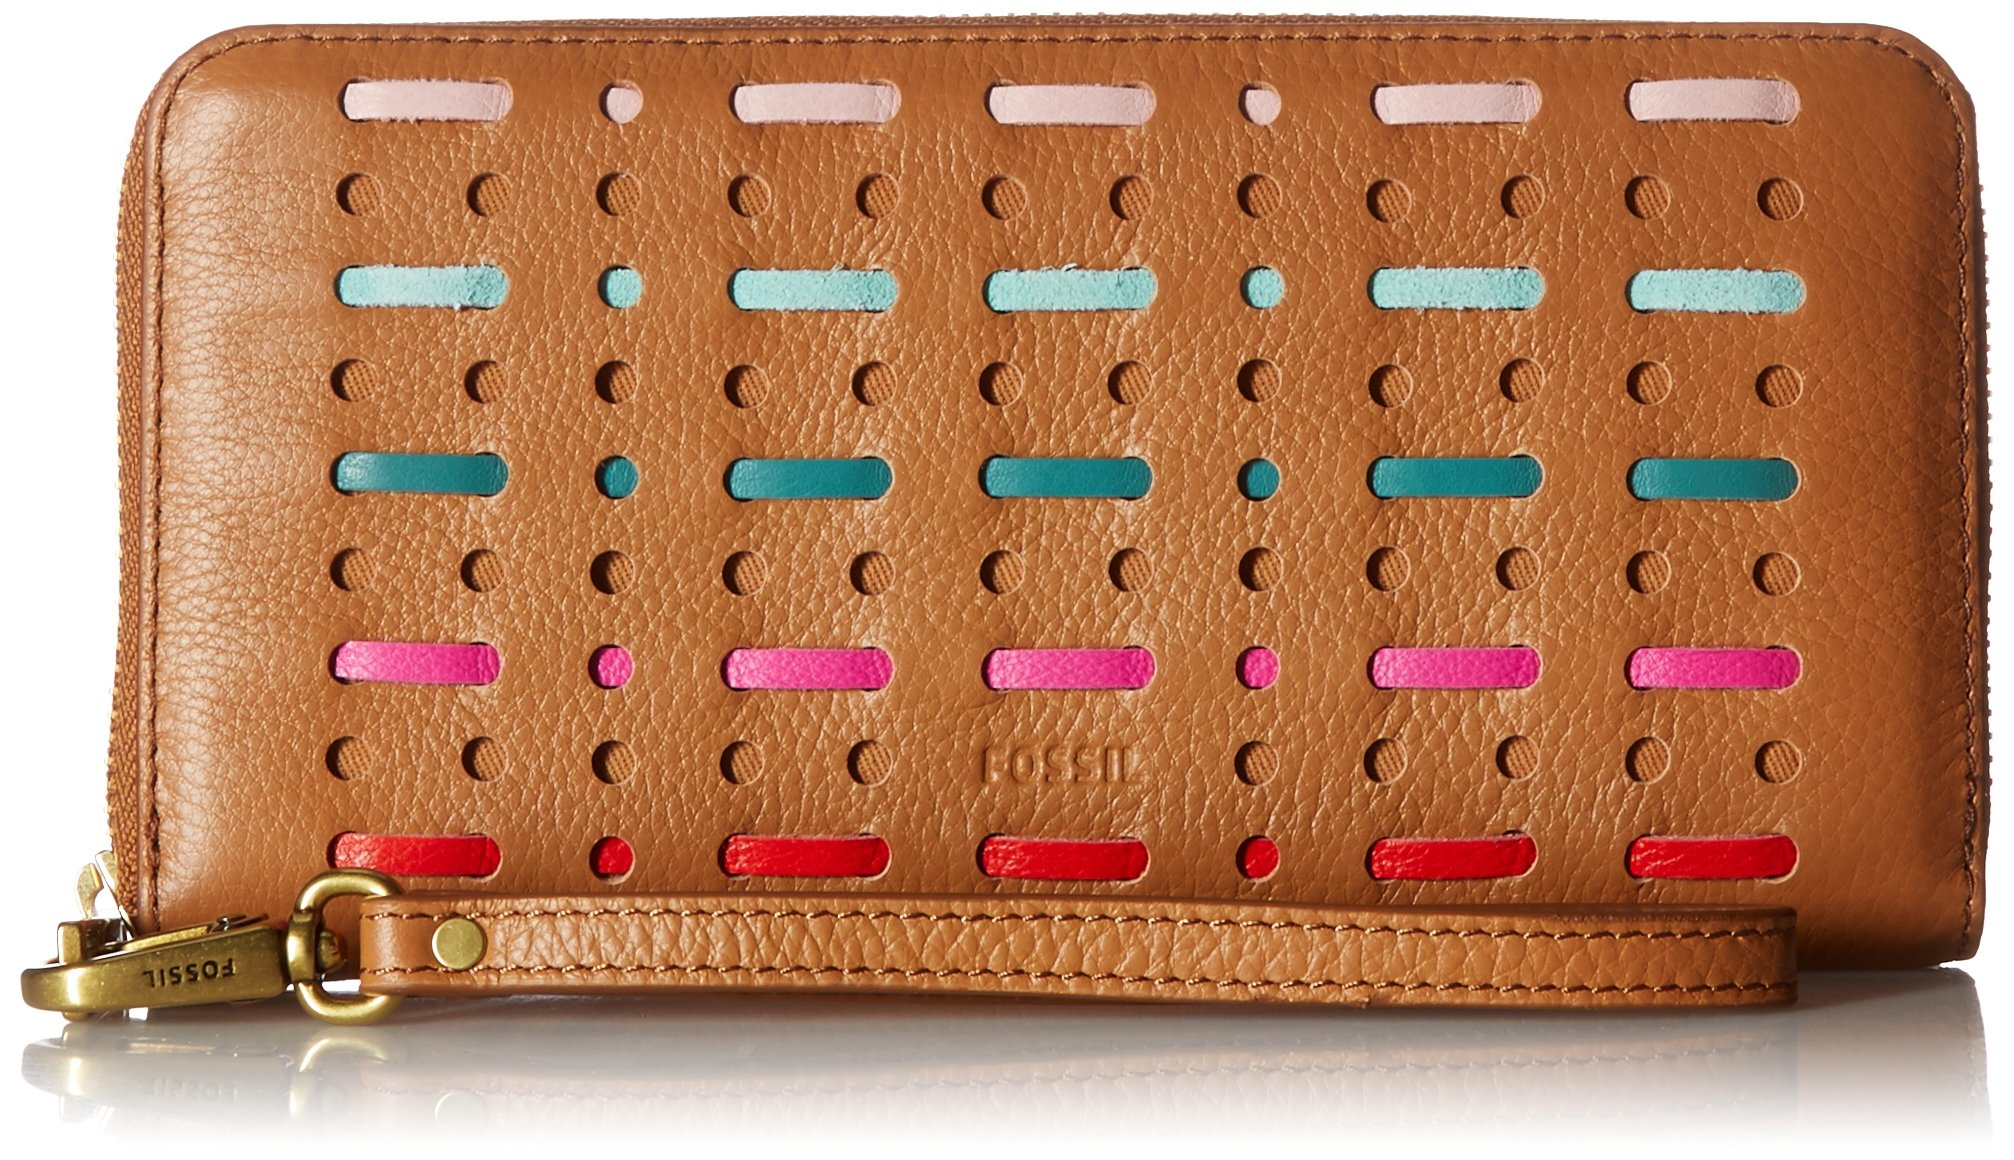 Emma Large Zip Wallet Wallet, Multi, One Size by Fossil